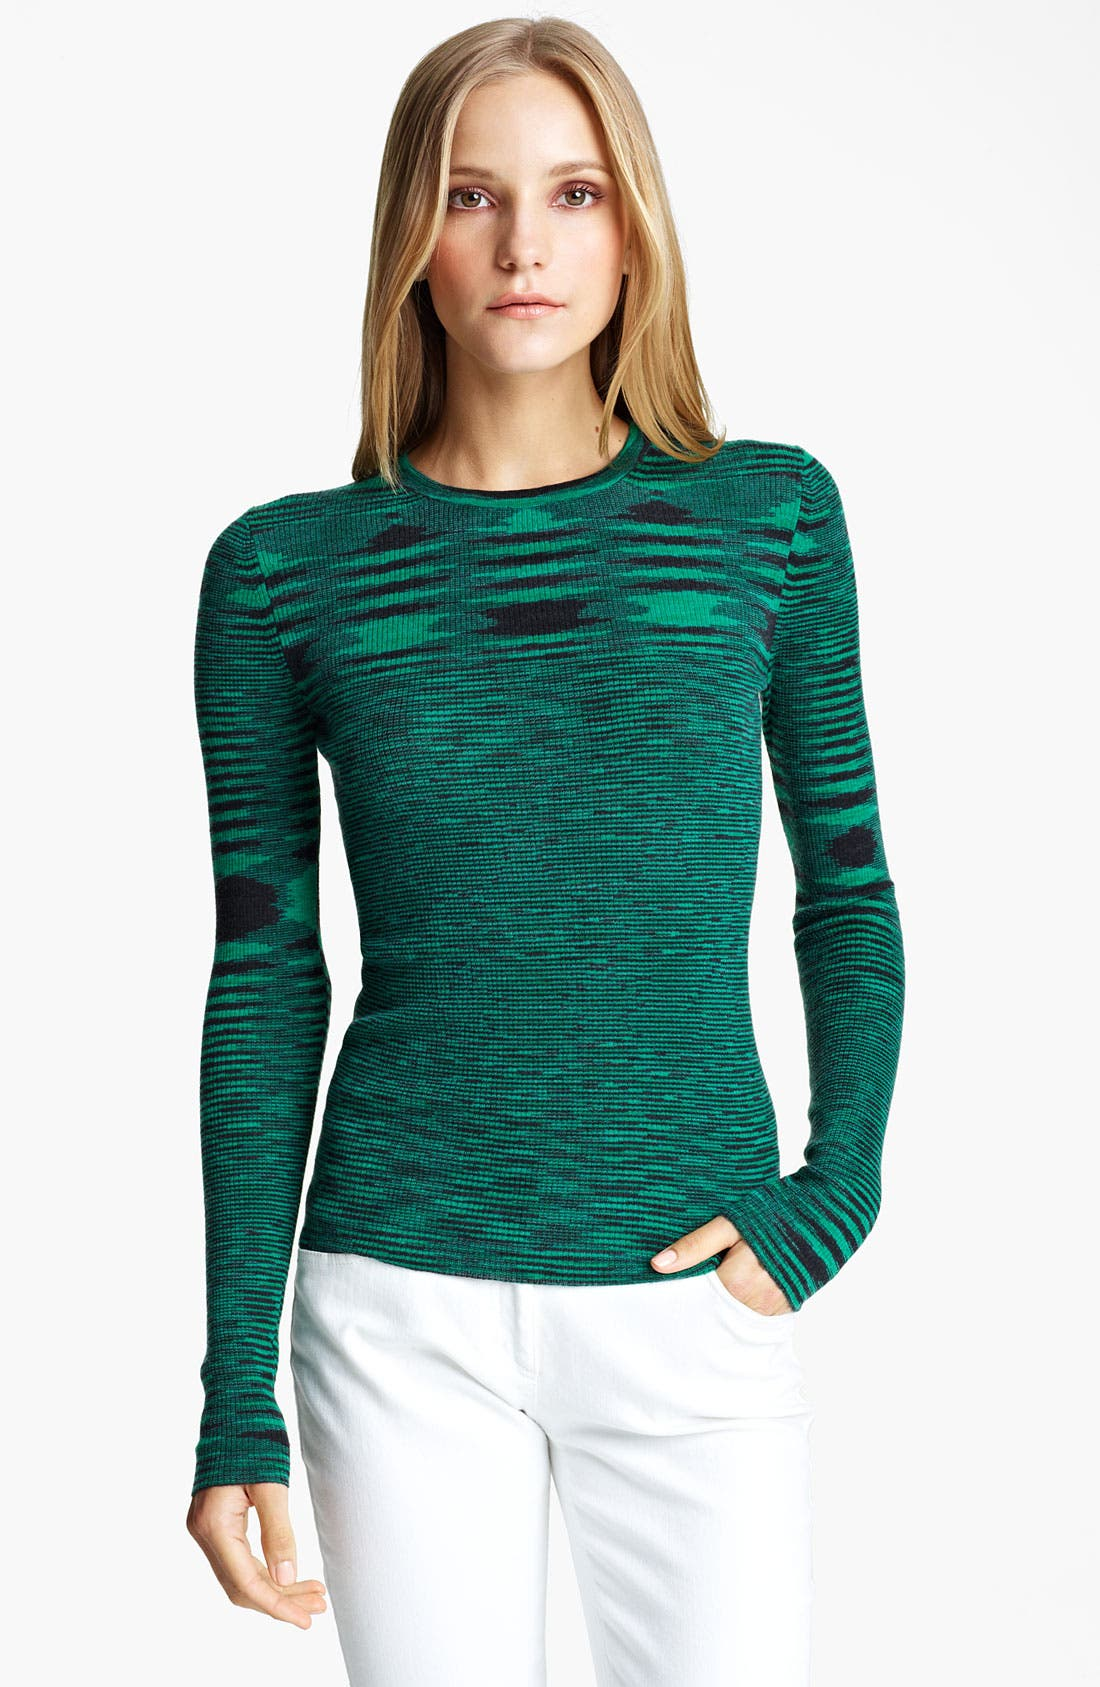 Alternate Image 1 Selected - Michael Kors Space Dye Cashmere Sweater